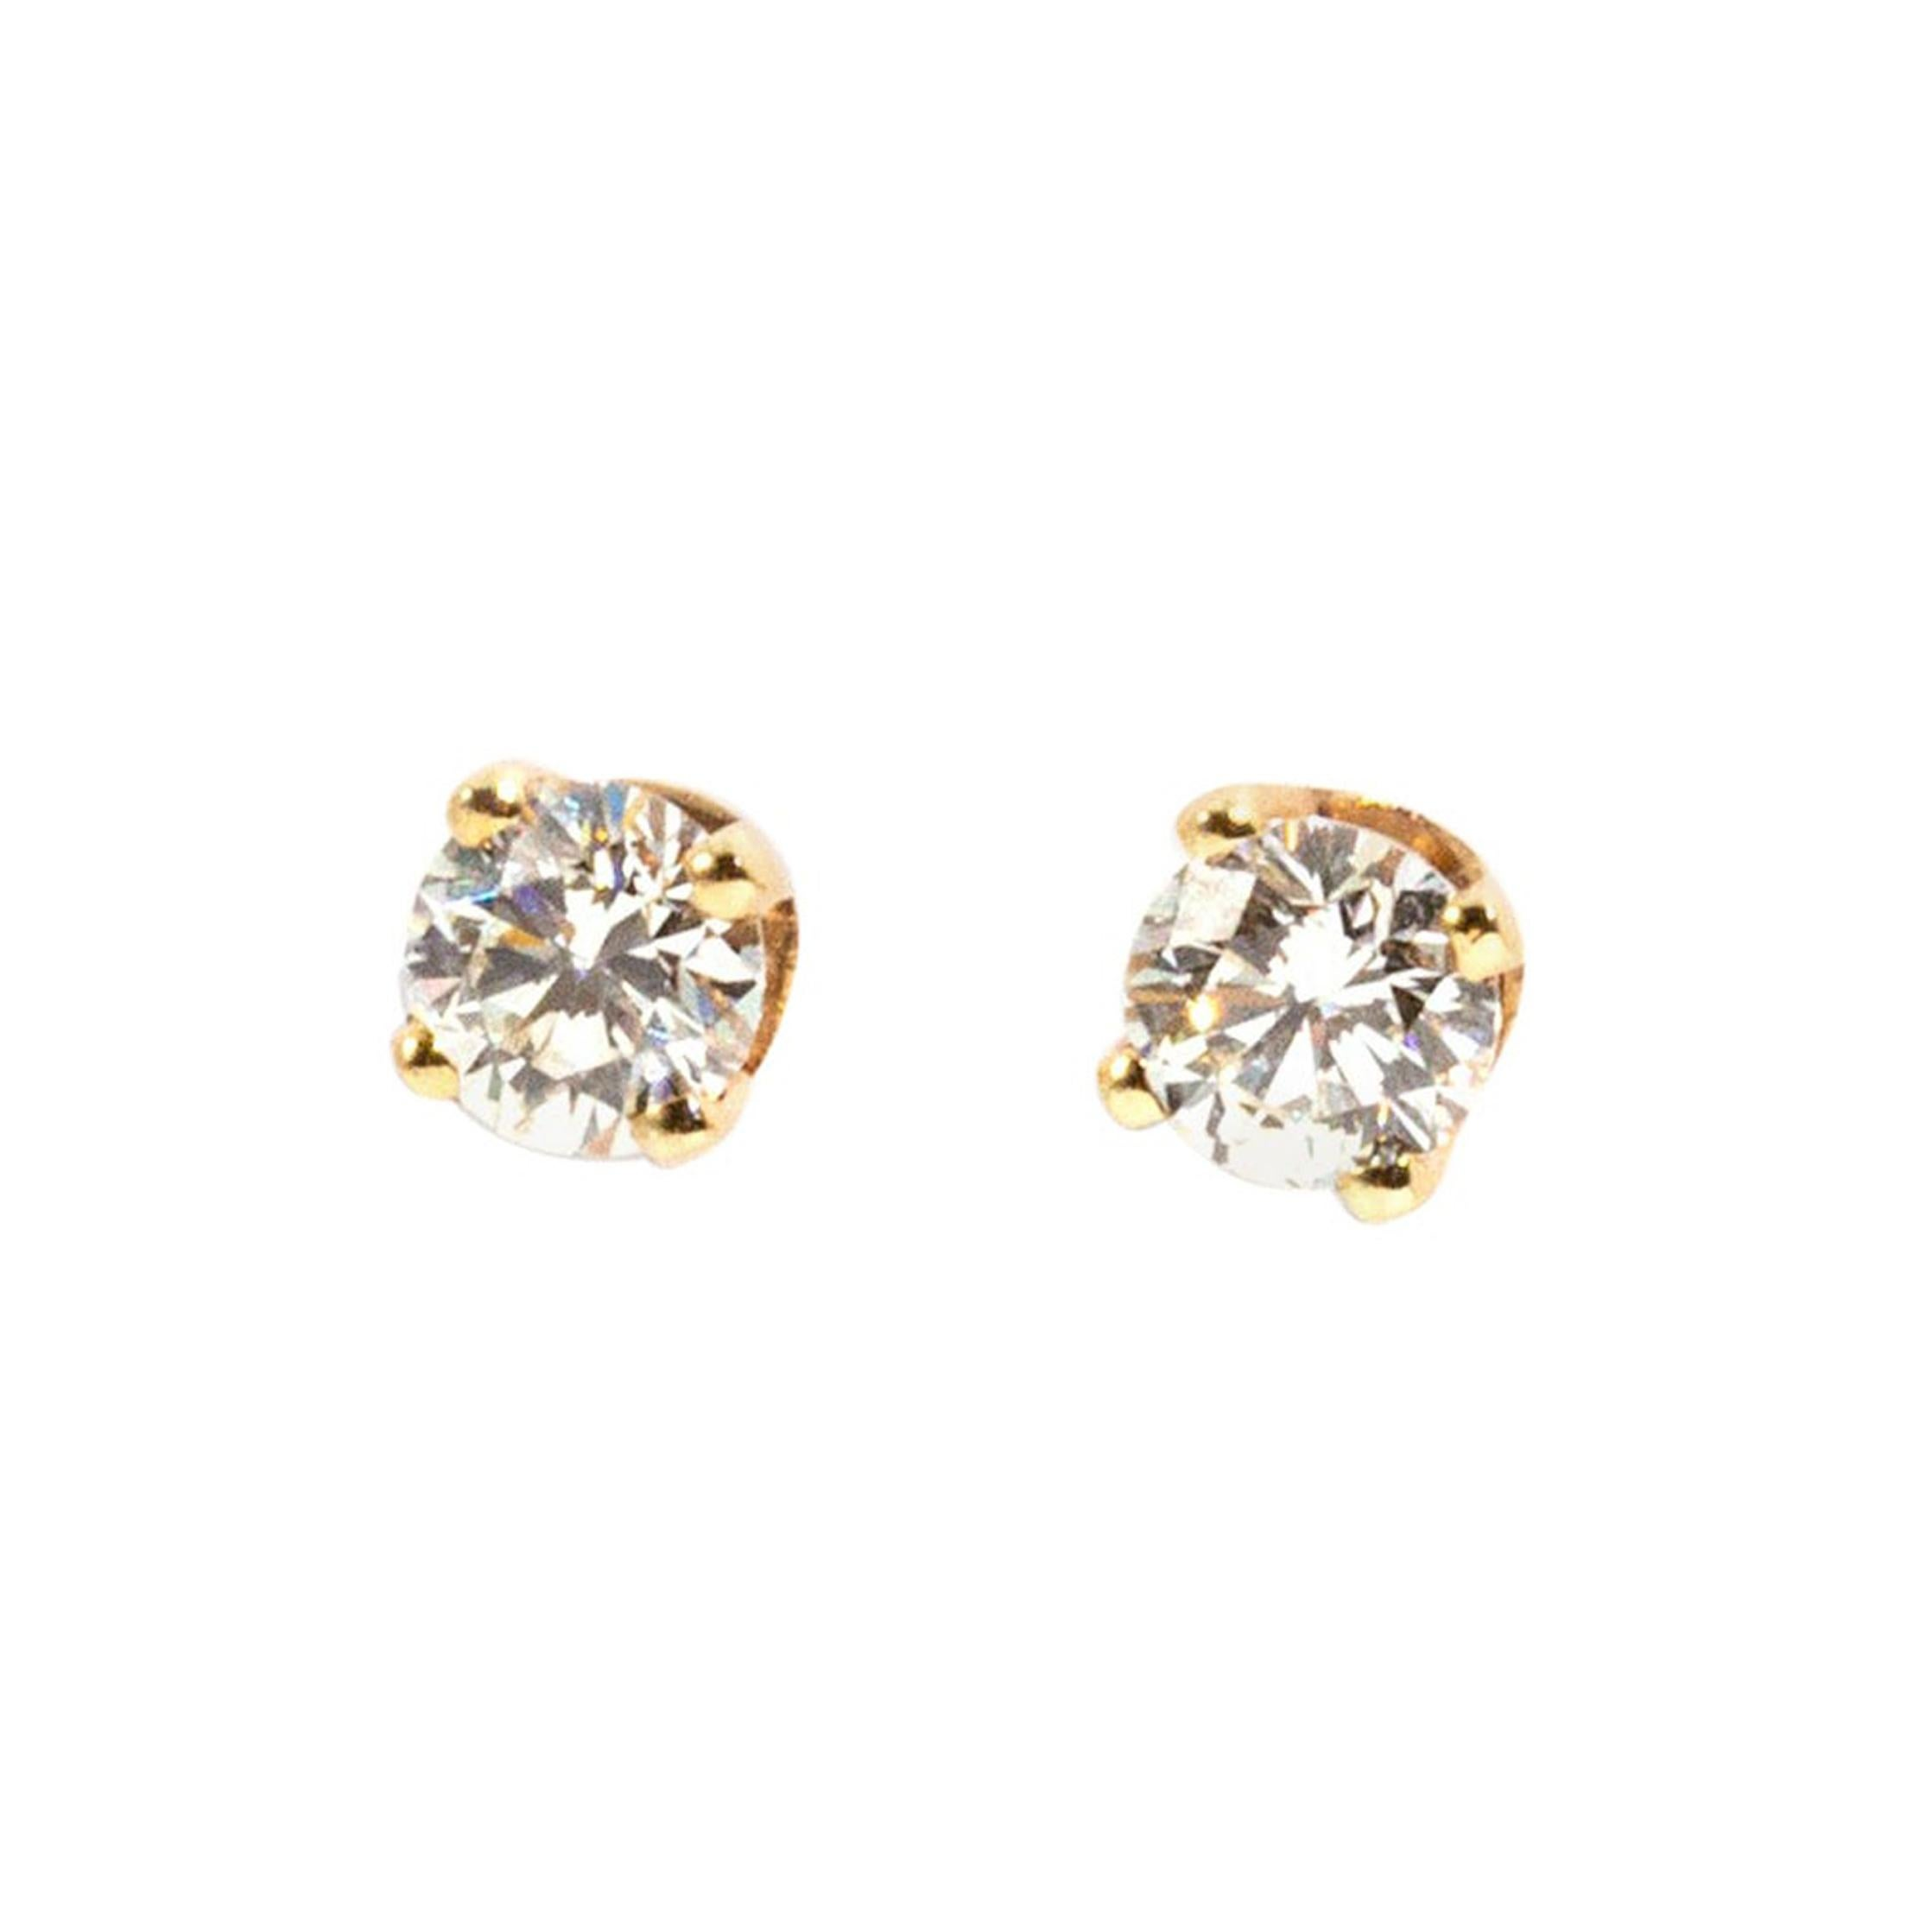 0.60 Carat Solitaire Round Brilliant Cut Diamond 9 Carat Gold Stud Earrings